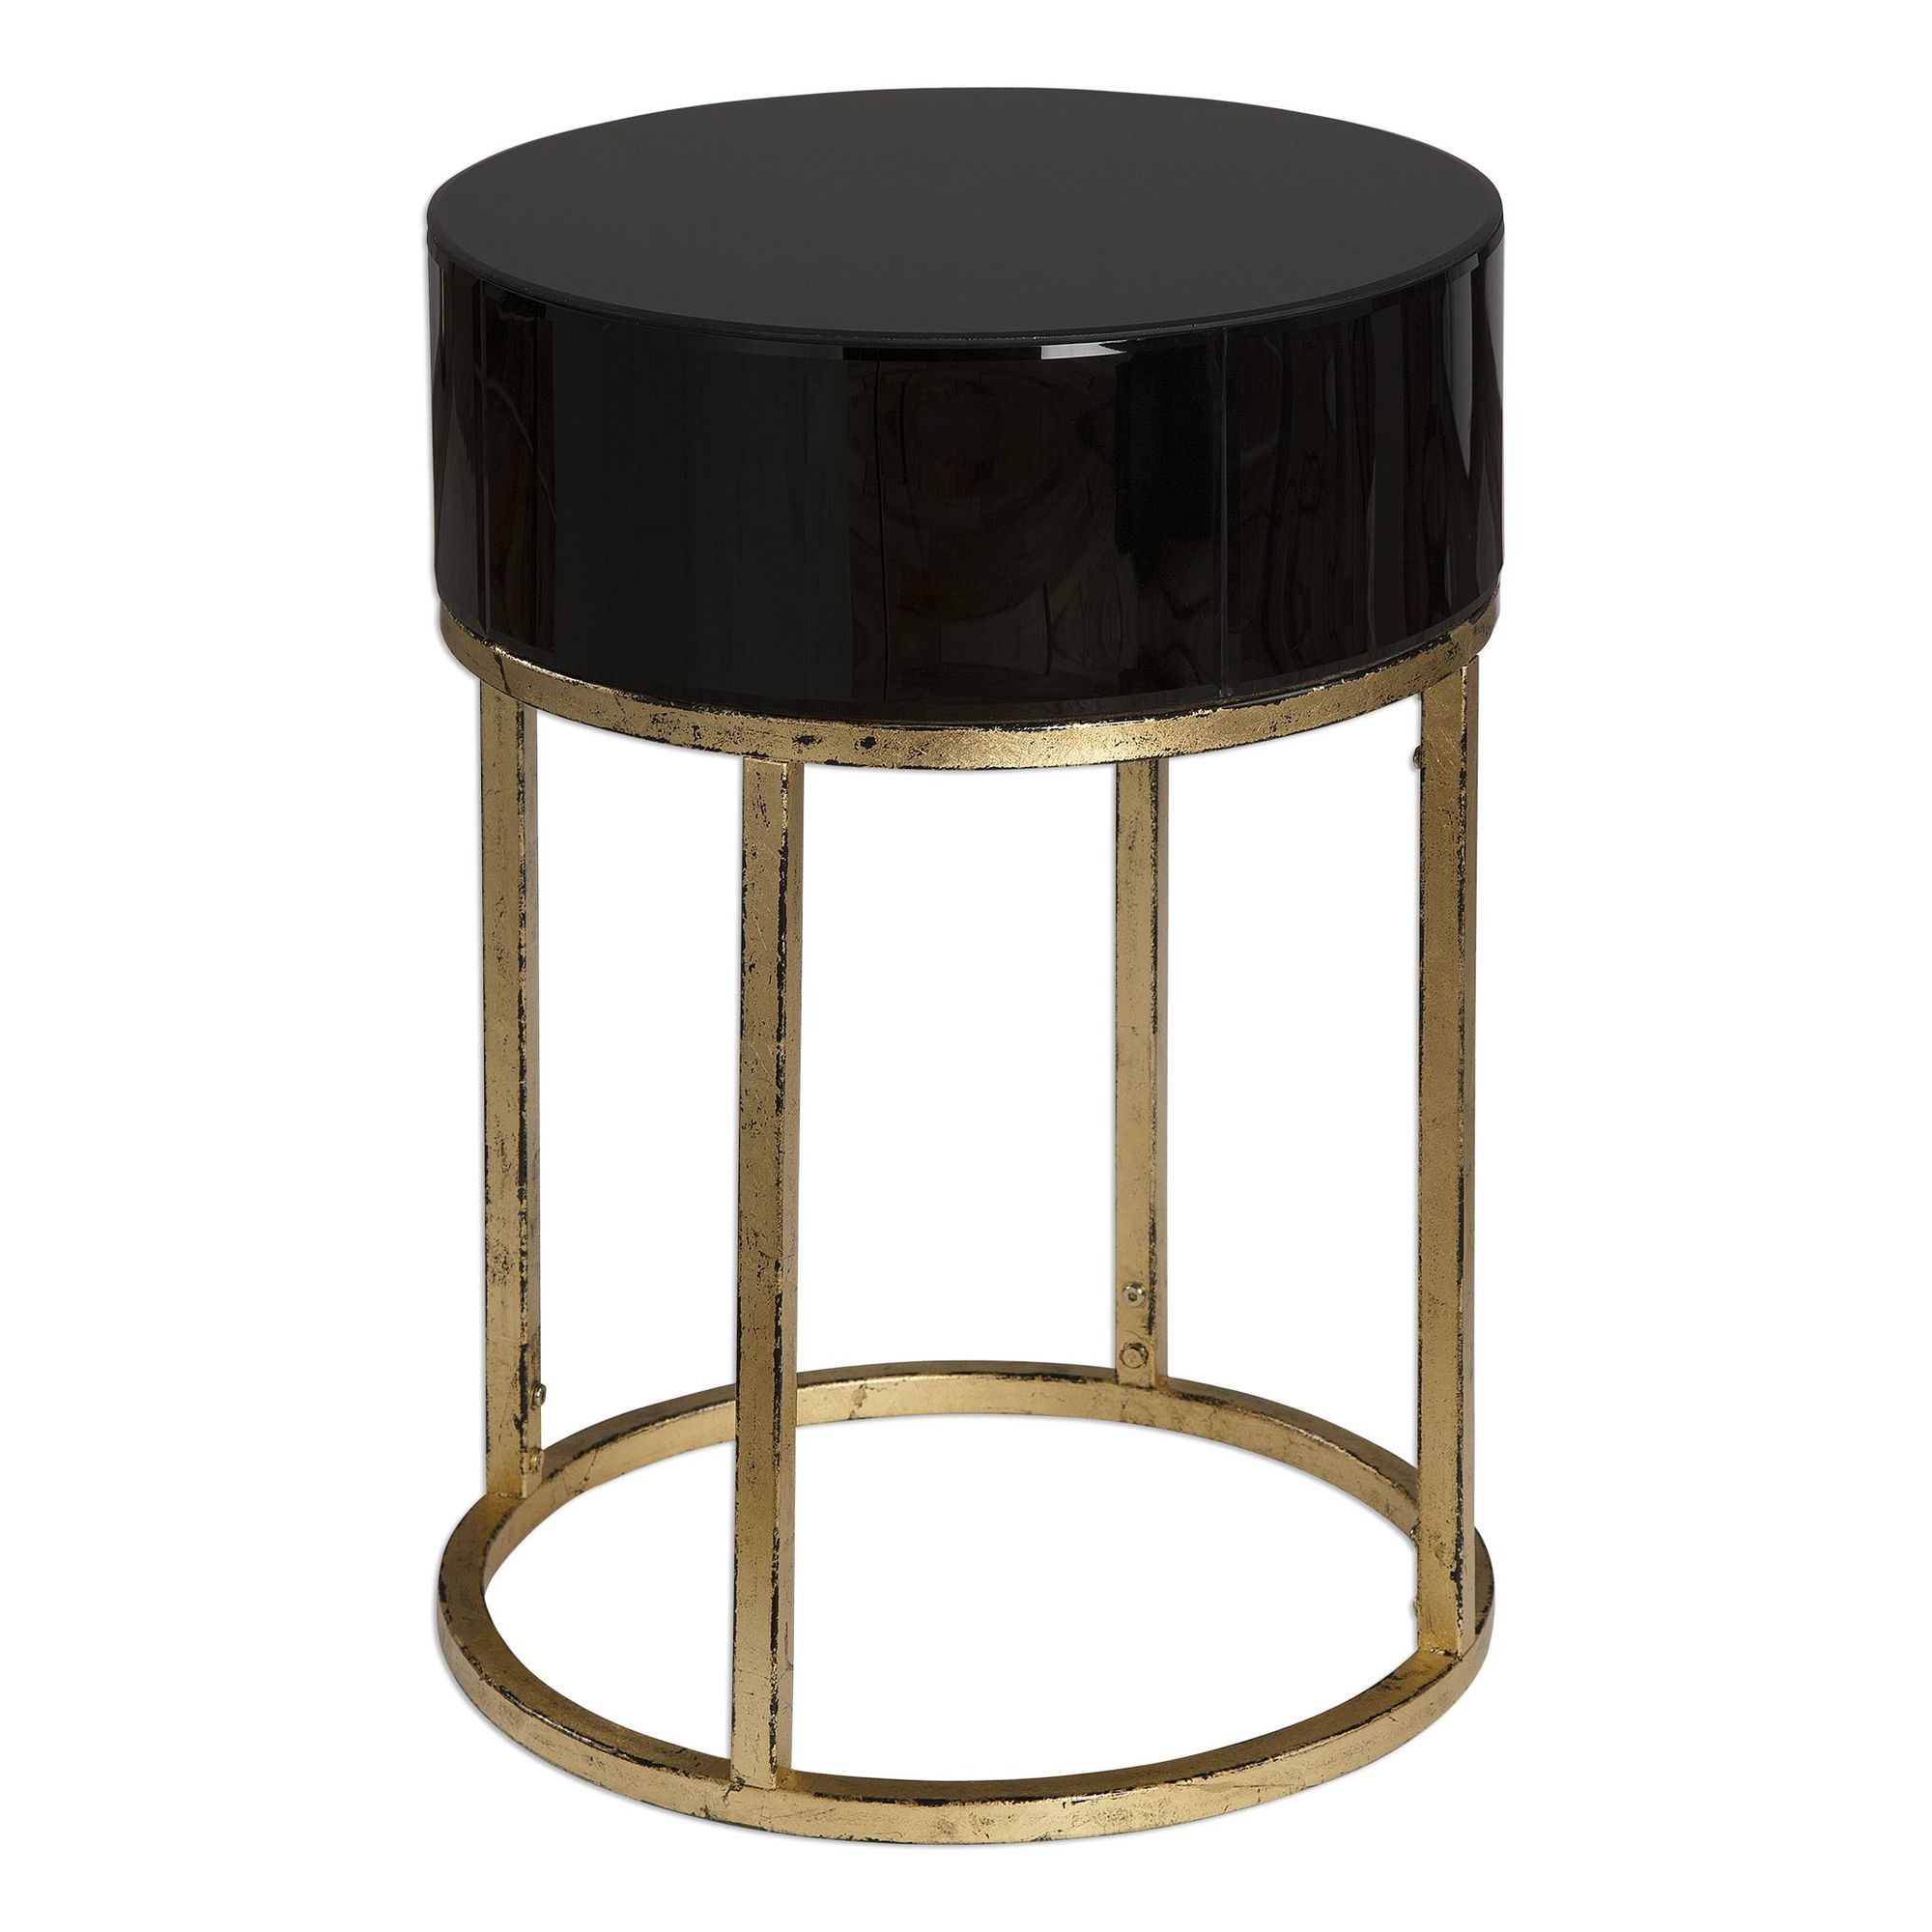 circular caged frame curved accent table antique gold mathis stool side bathroom styles tall chairs small square tablecloth ikea wall storage ideas dining room furniture white and